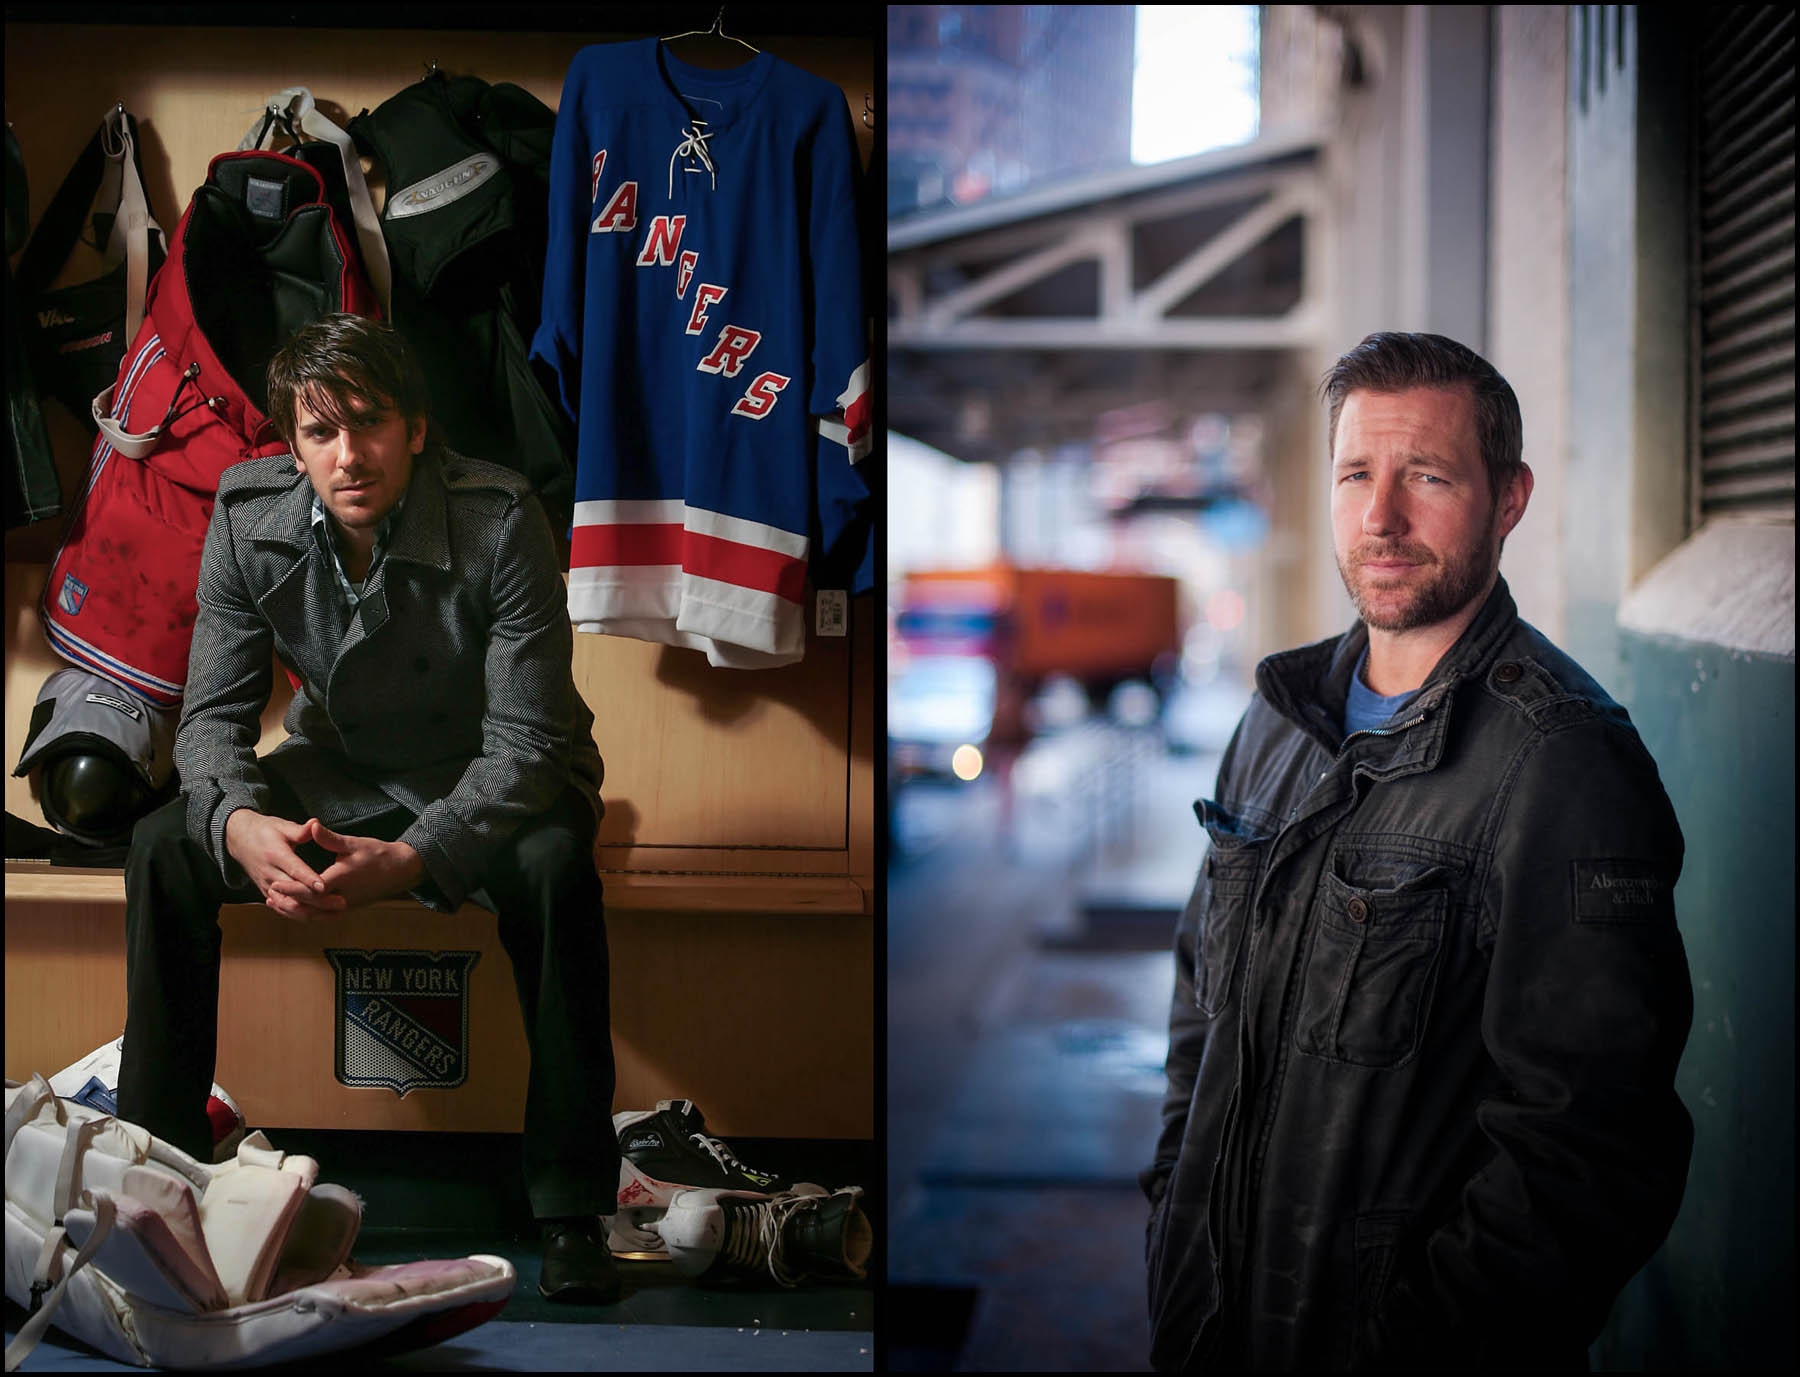 New York Rangers Goalie Henrik Lundqvist at the Rangers Training Facility in Greenburgh, NY. Actor Ed Burns photographed on the streets of Tribeca.